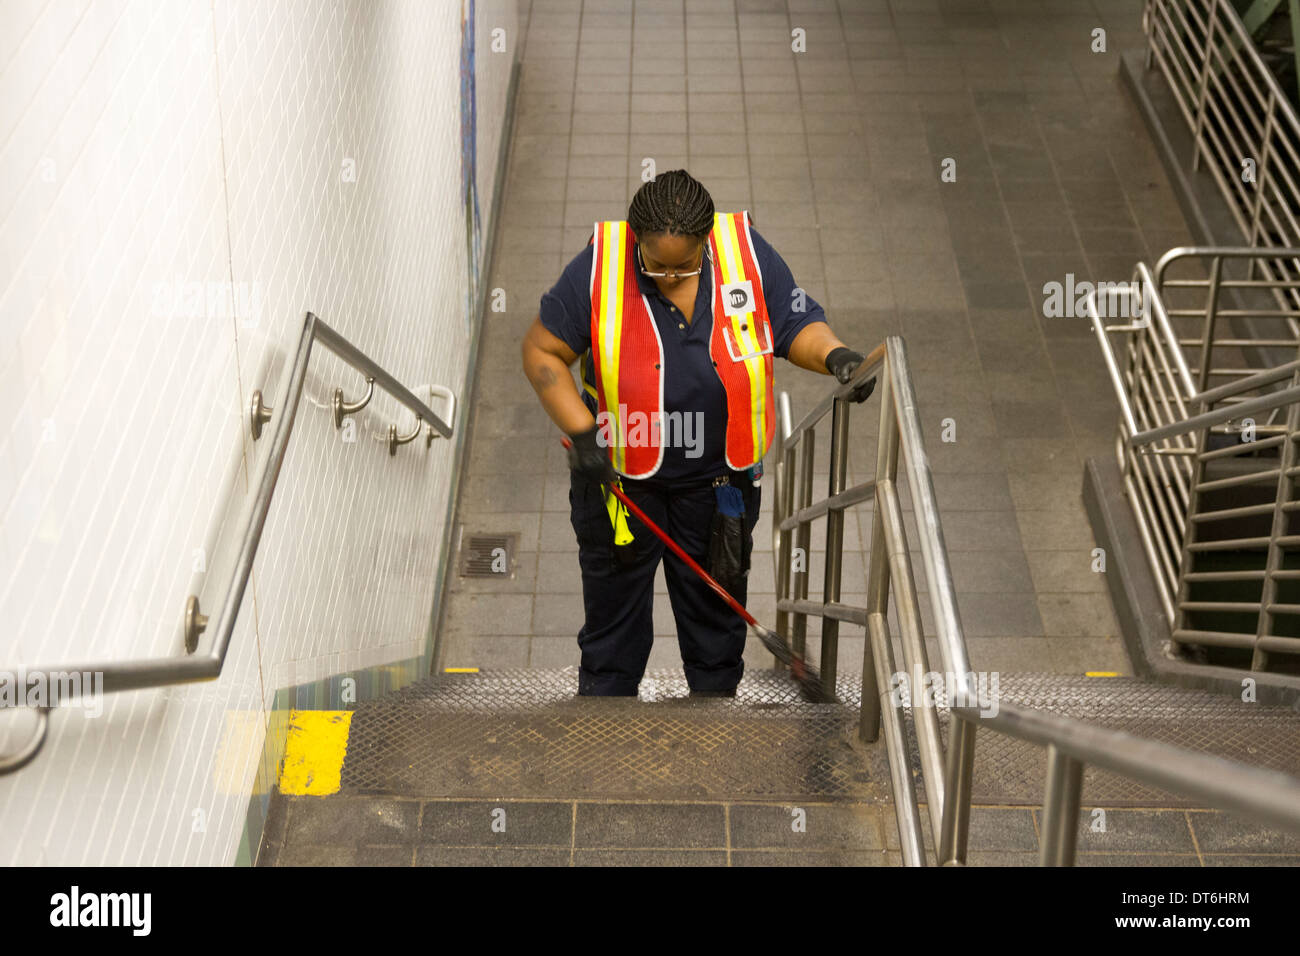 Women Cleaning inside the train station - Stock Image